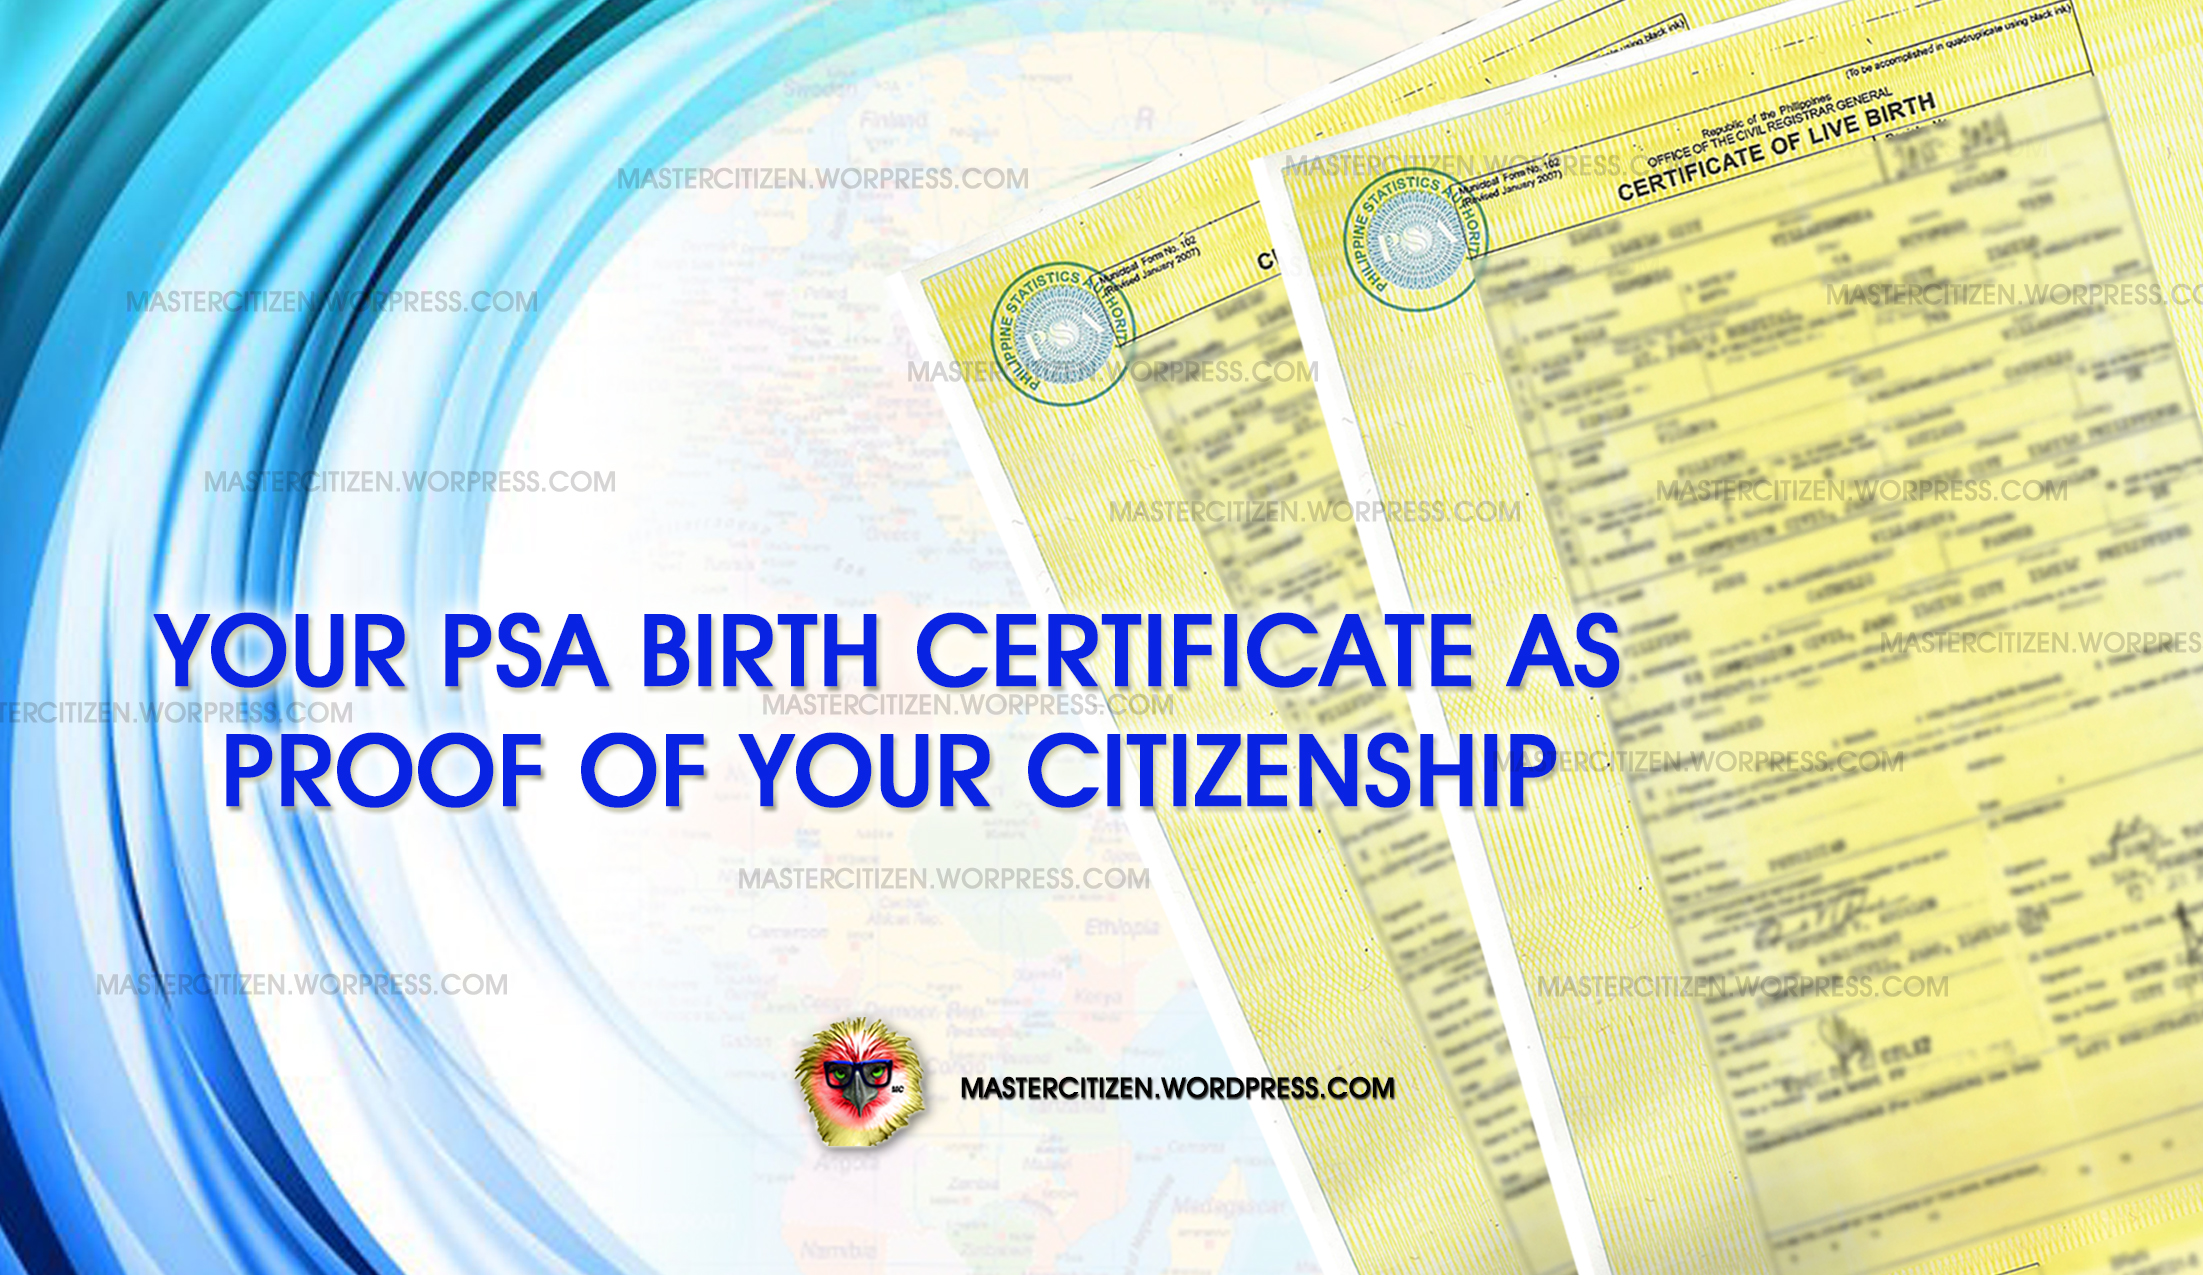 Your PSA Birth Certificate As Proof Of Your Citizenship ...